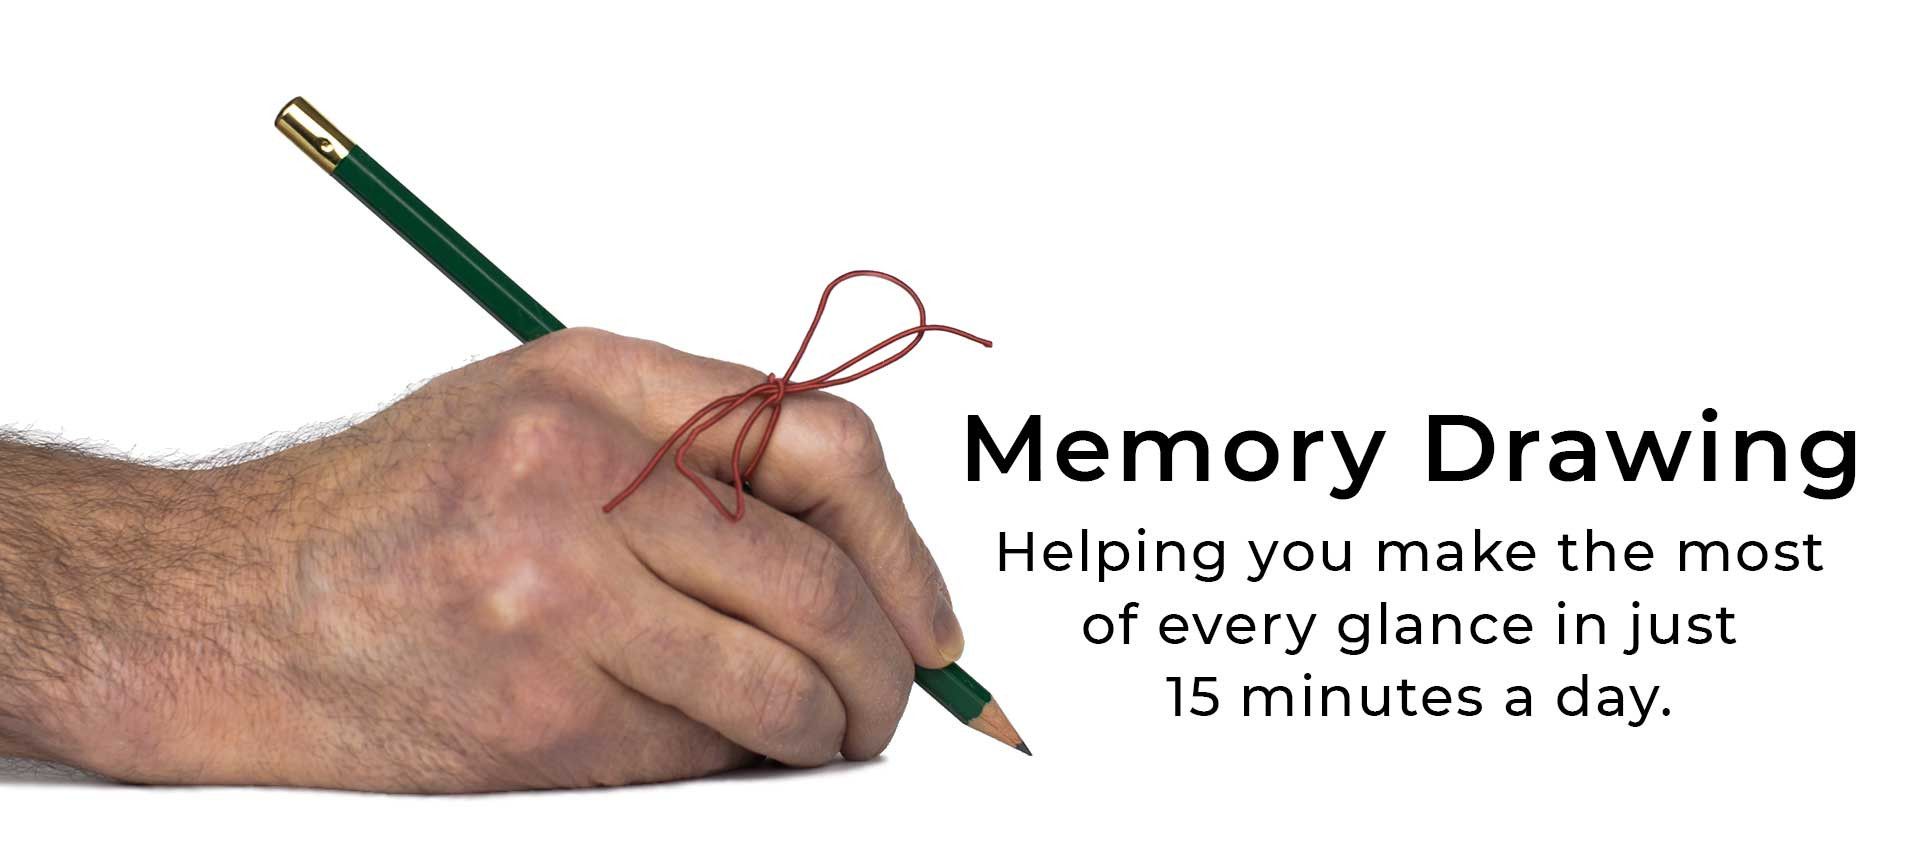 memory-drawing-course-banner-1920x867